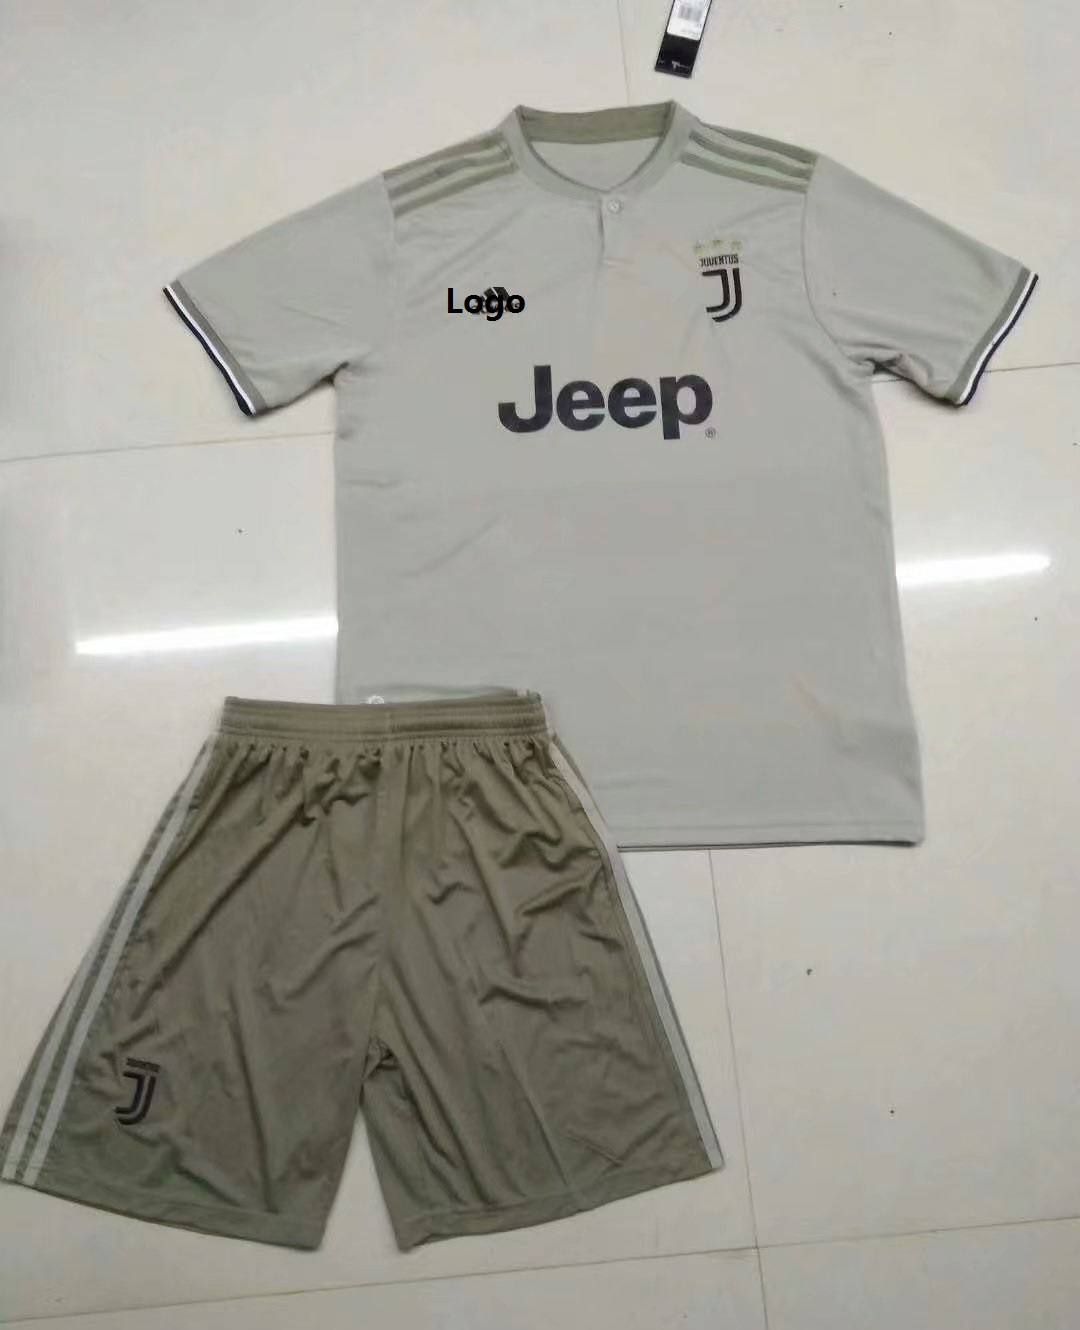 a365c105e 2018/19 AAA Men Grey Juventus Away Soccer Uniform Adult Football Kits Item  NO: 549109